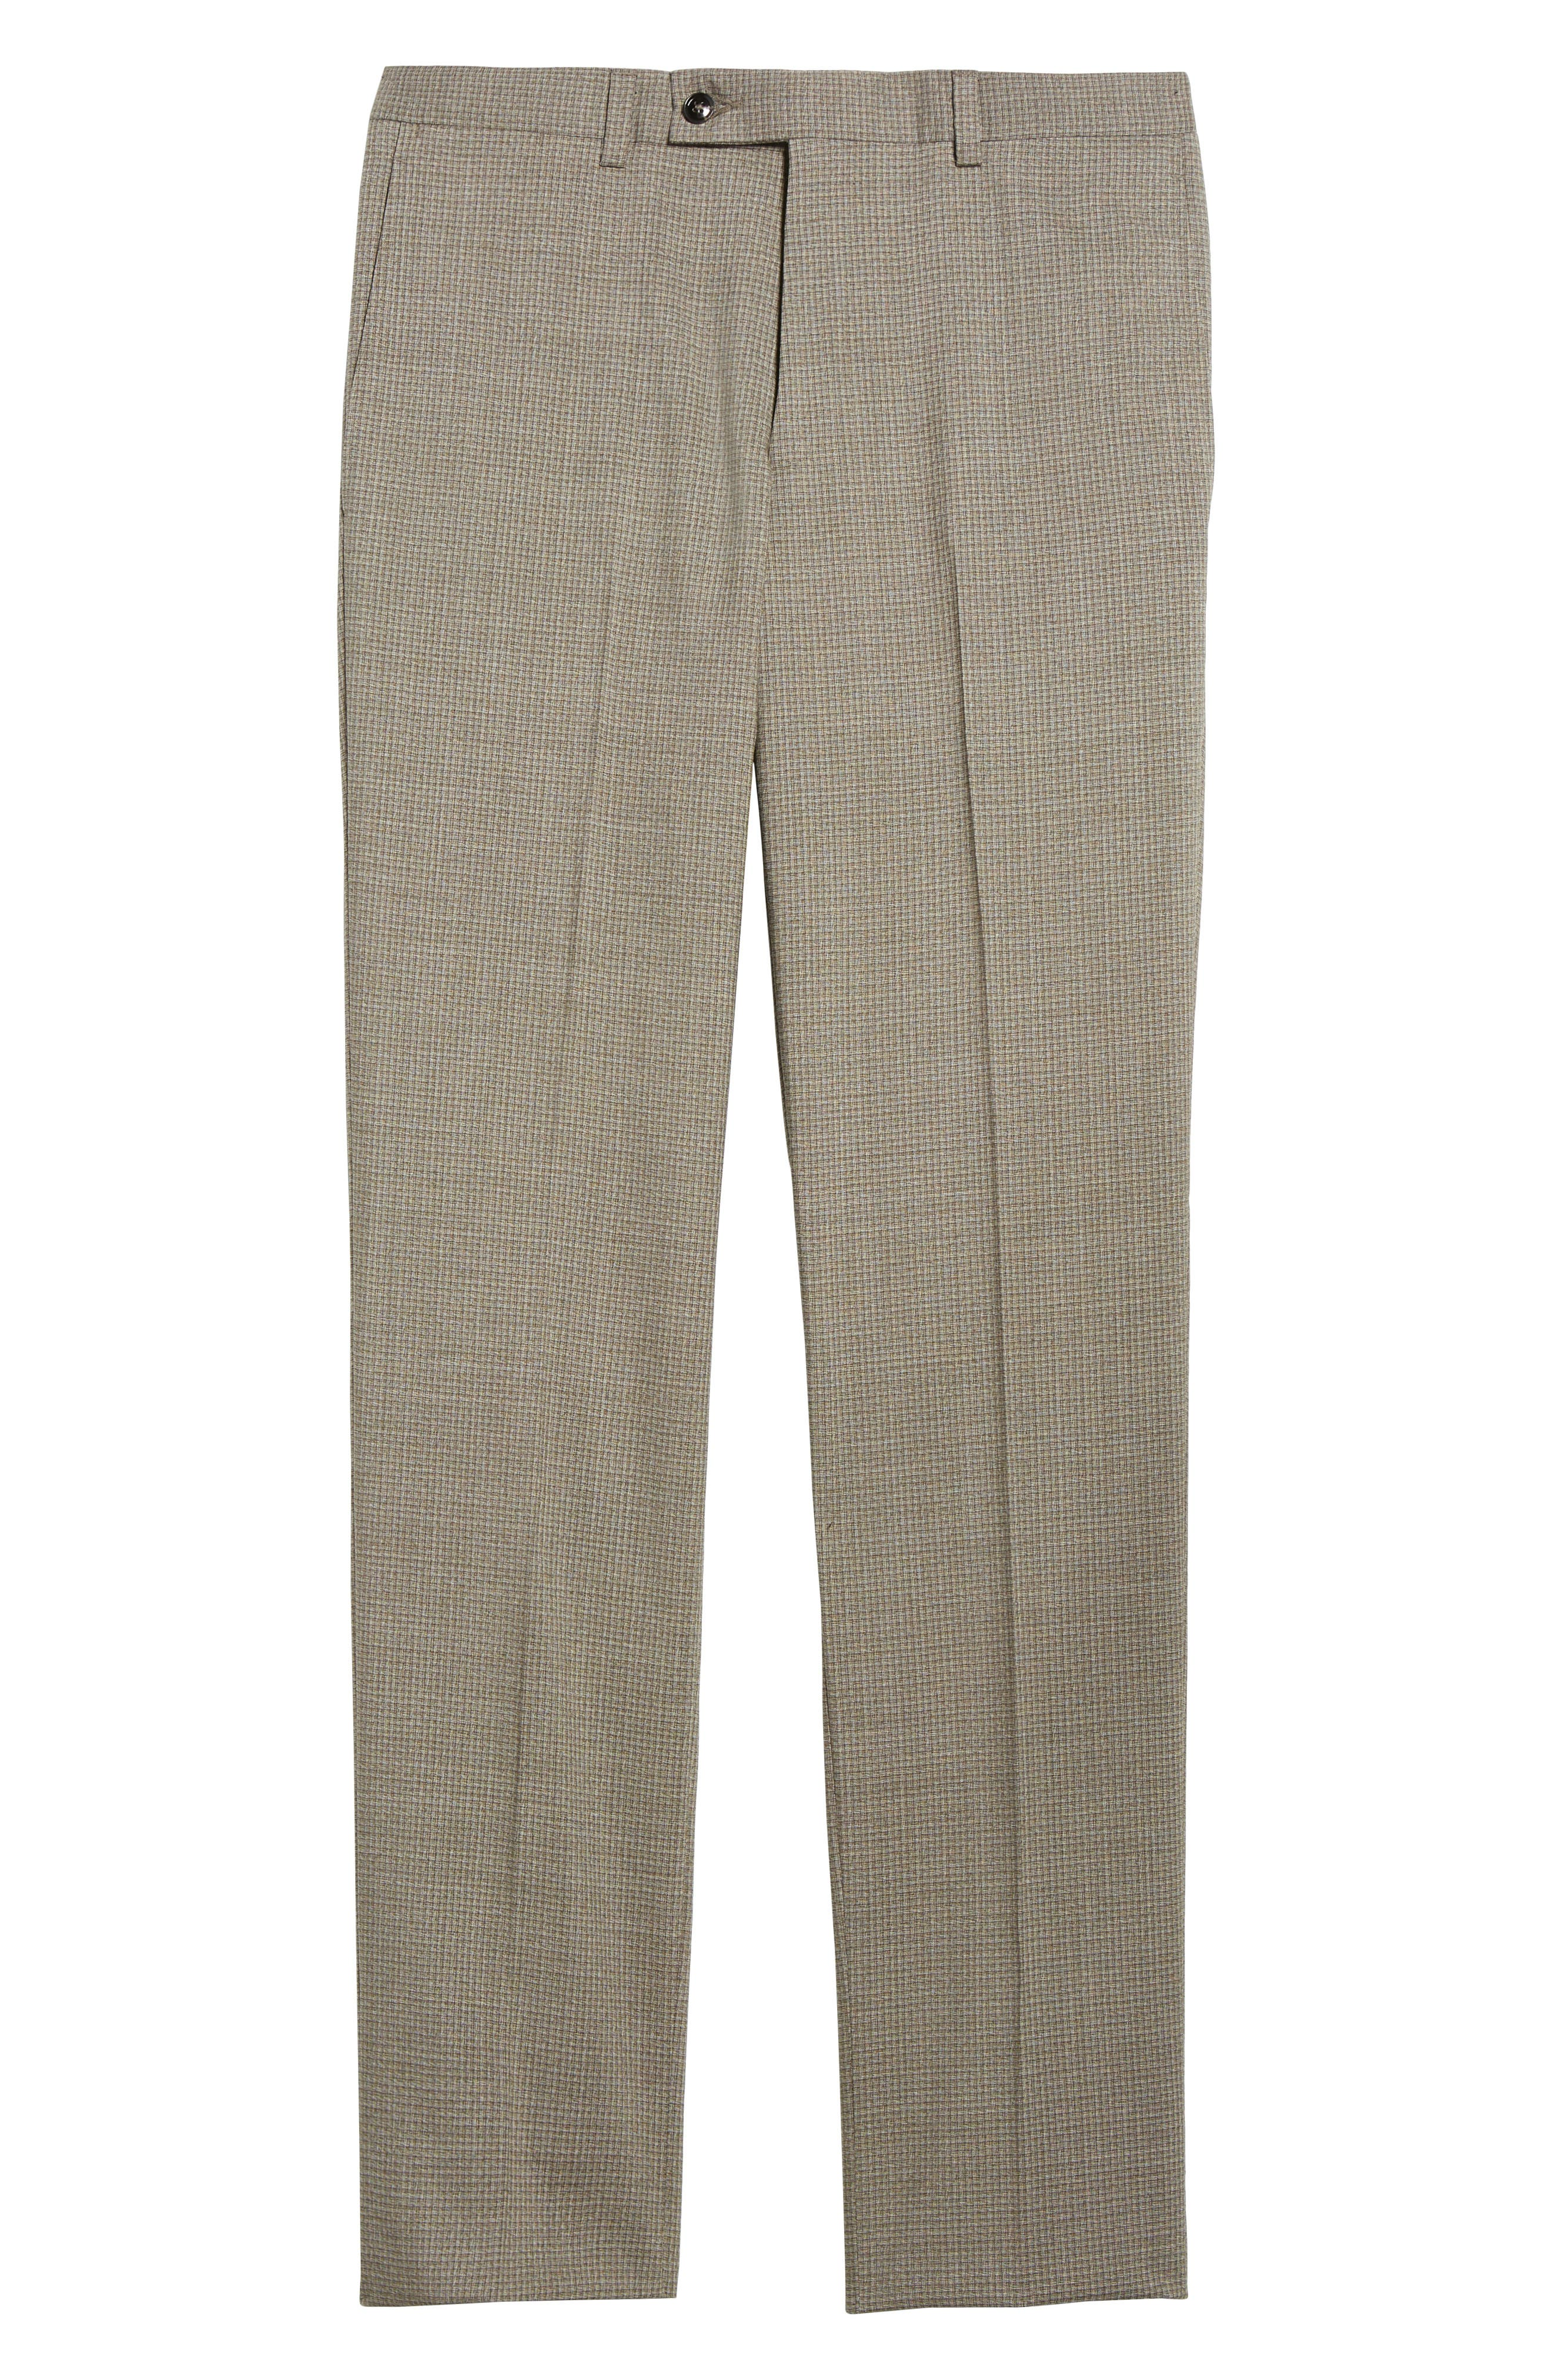 Flat Front Check Wool Trousers,                             Alternate thumbnail 6, color,                             250